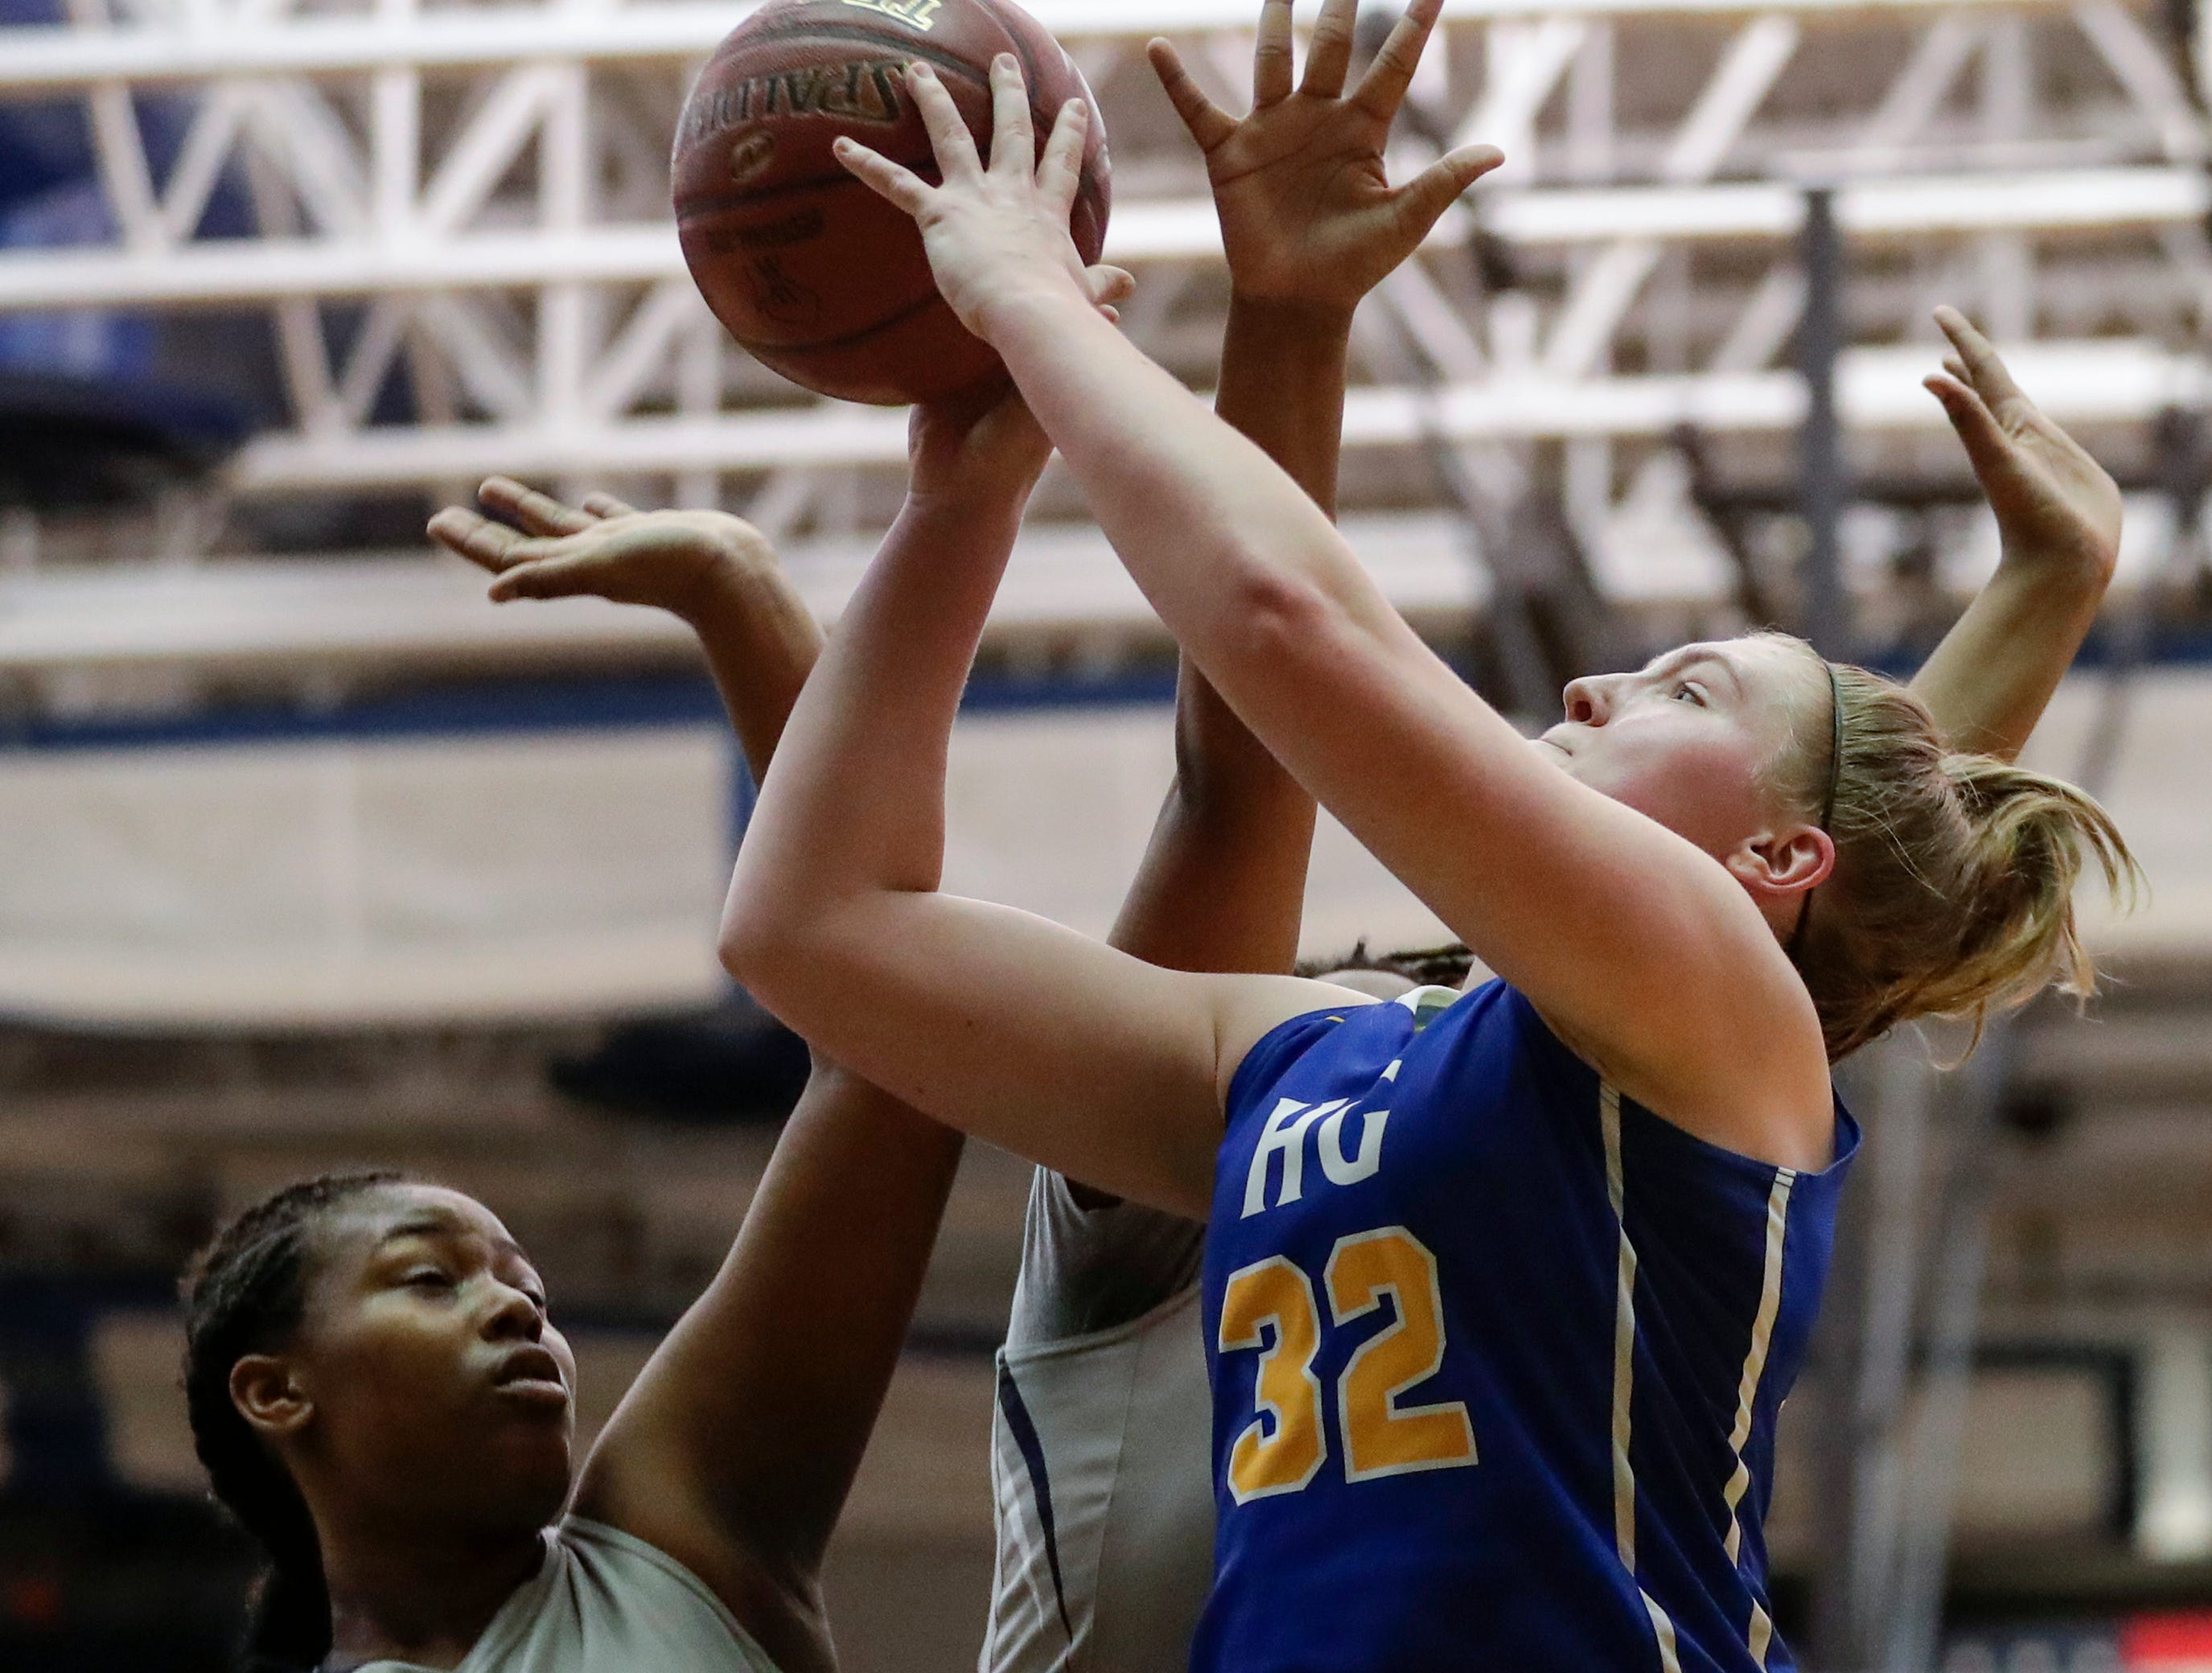 Howards Grove's Madalynn Near shoots against Milwaukee Academy of Science's Nakiyah Hurst during a WIAA Division 4 sectional championship game at Sheboygan North High School Saturday, March 2, 2019, in Sheboygan, Wis. Joshua Clark/USA TODAY NETWORK-Wisconsin